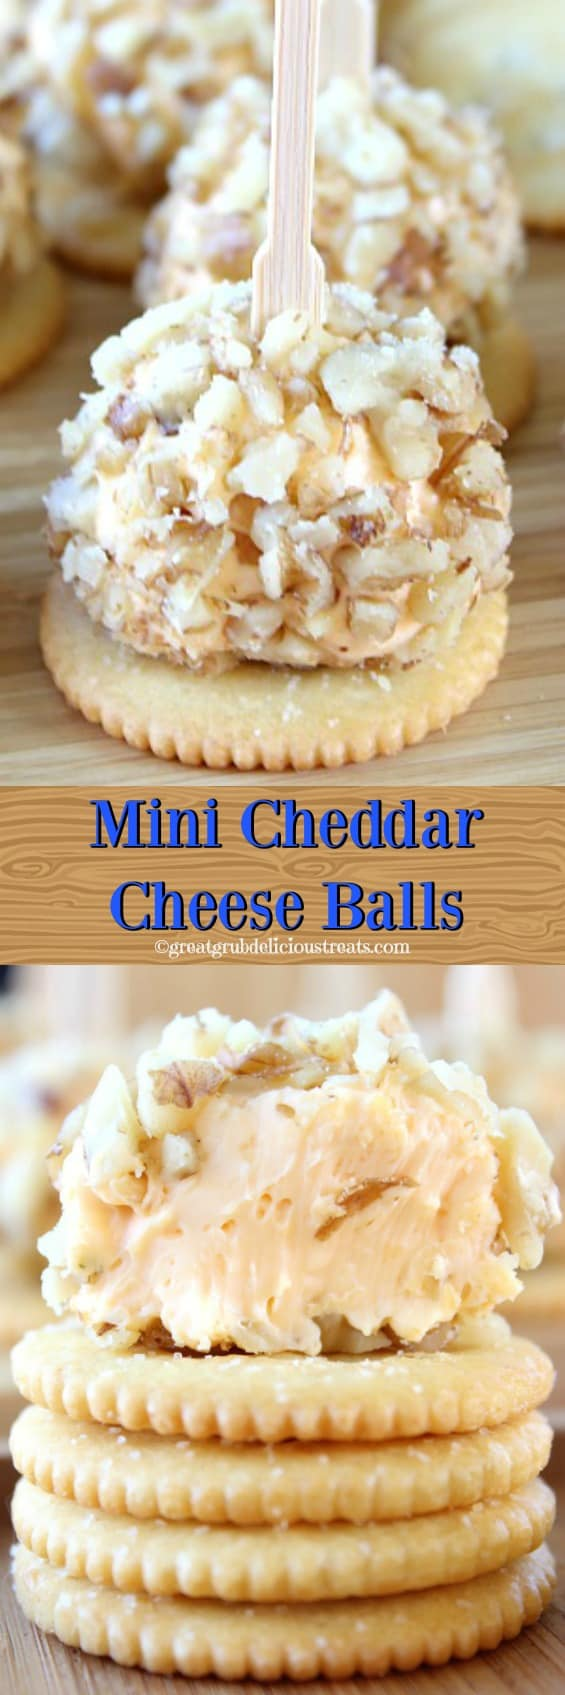 Mini Cheddar Cheese Balls